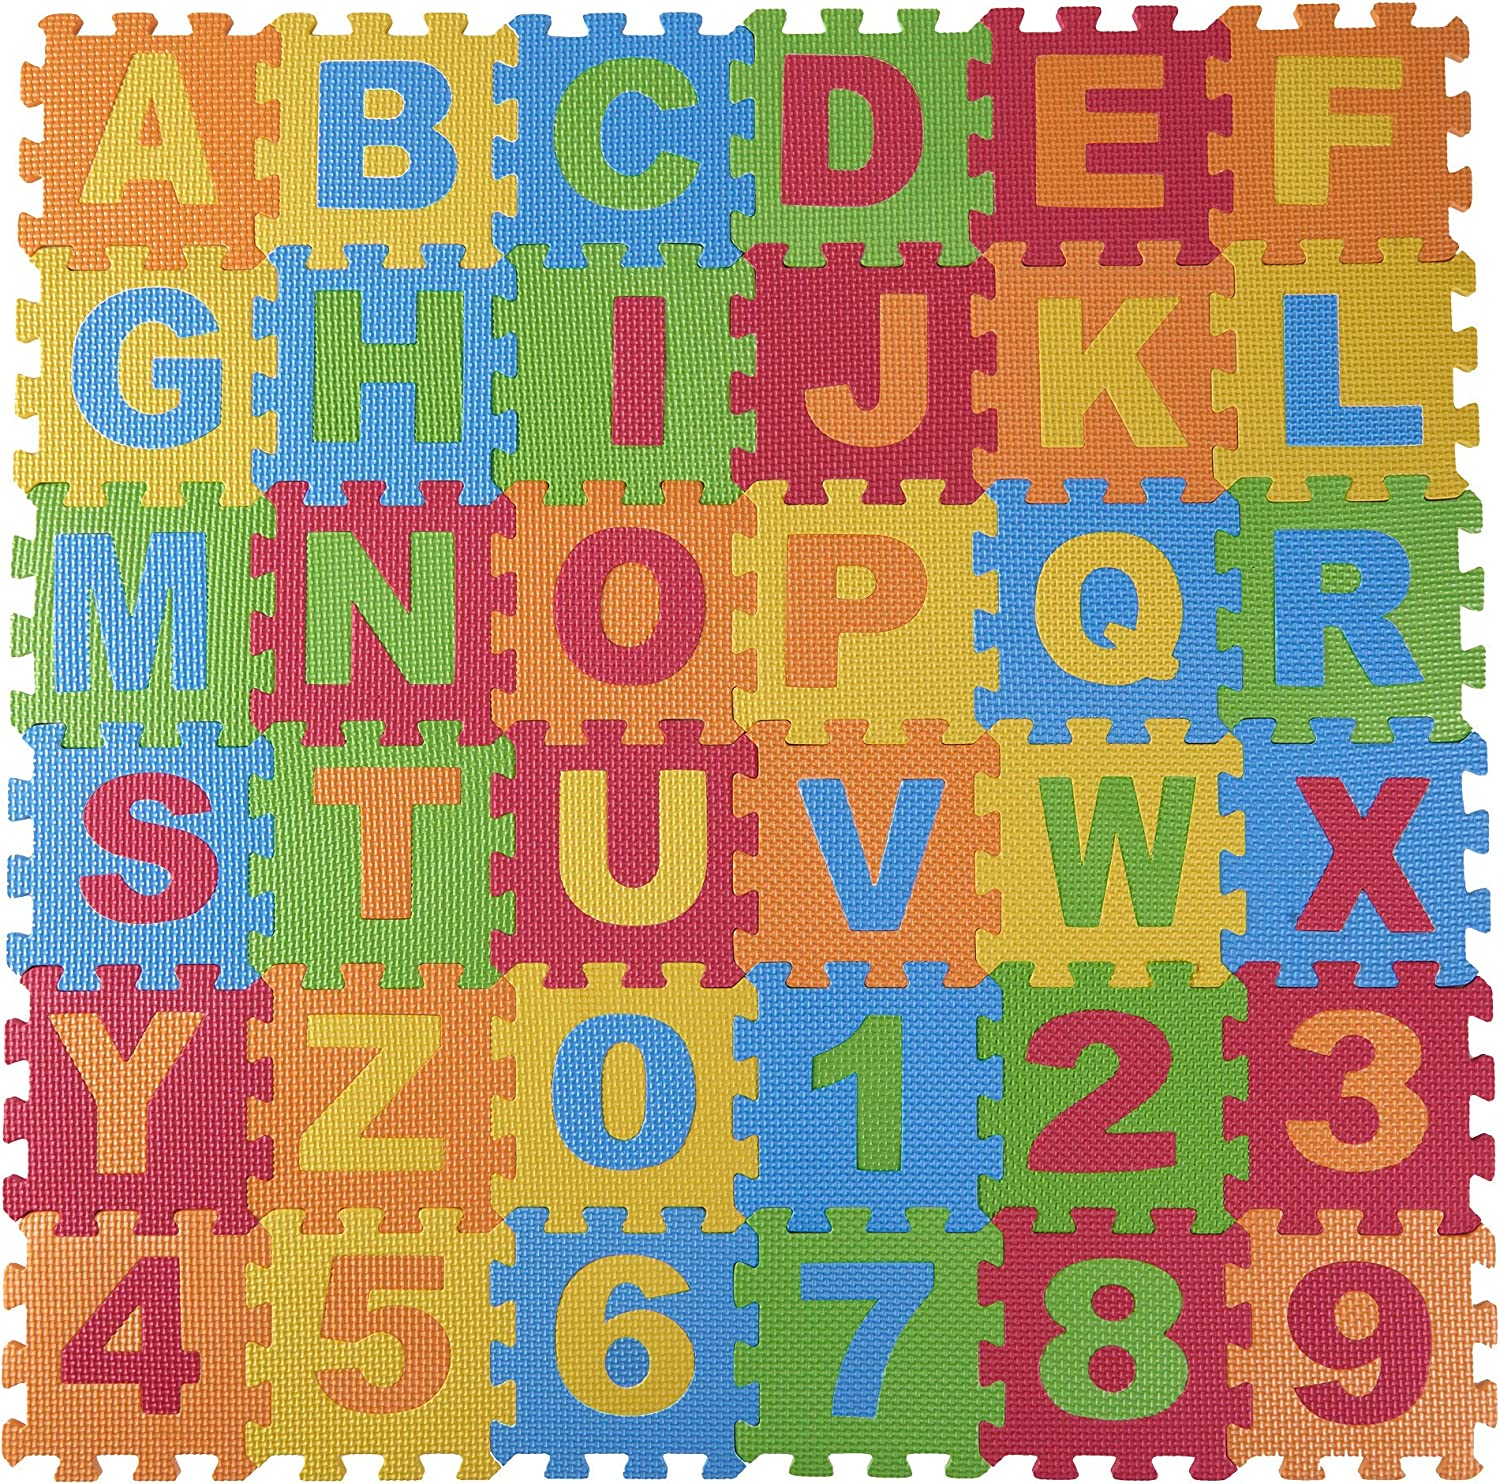 DIMPLE Baby Foam Play Mat (36-Piece Set) 6.25 x 6.25 Inches Interlocking Alphabet and Numbers Floor Puzzle Colorful EVA Tiles Girls, Boys Soft, Reusable, Easy to Clean by, DC12703L: Toys & Games